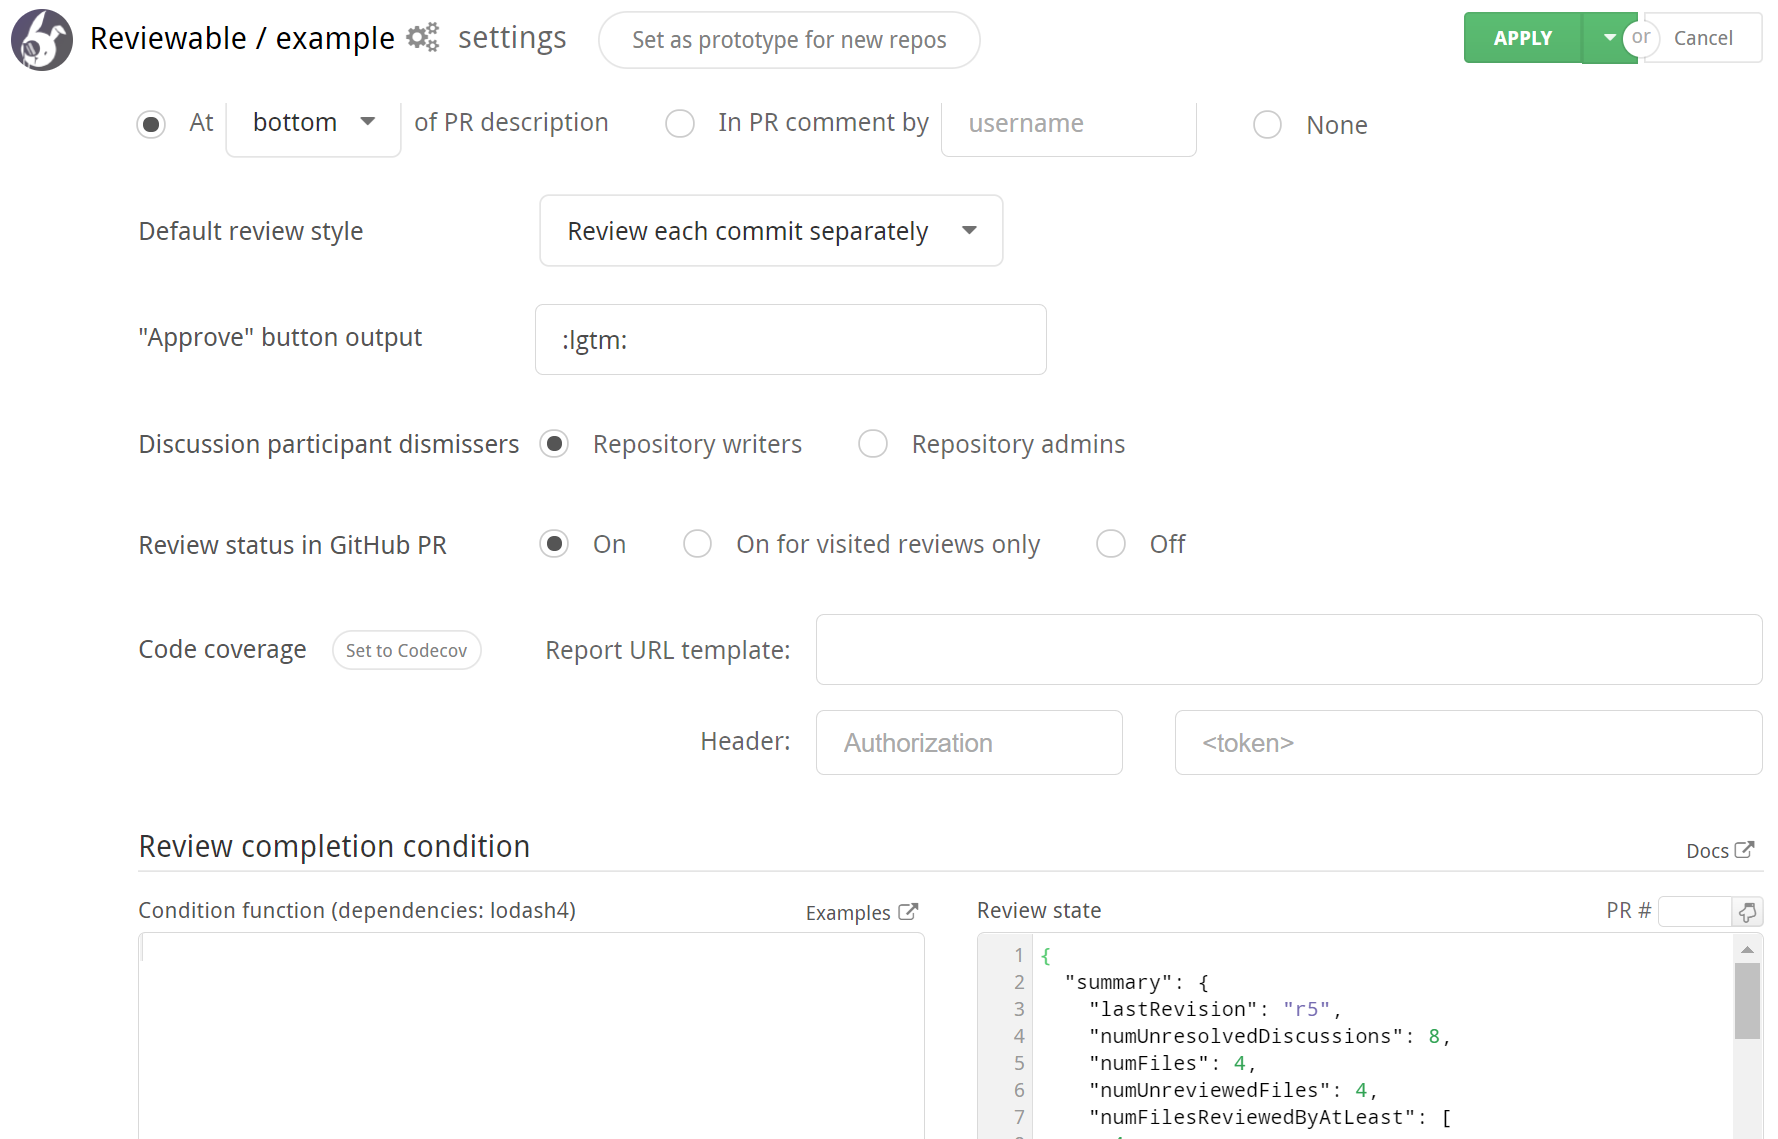 reviewable repo settings